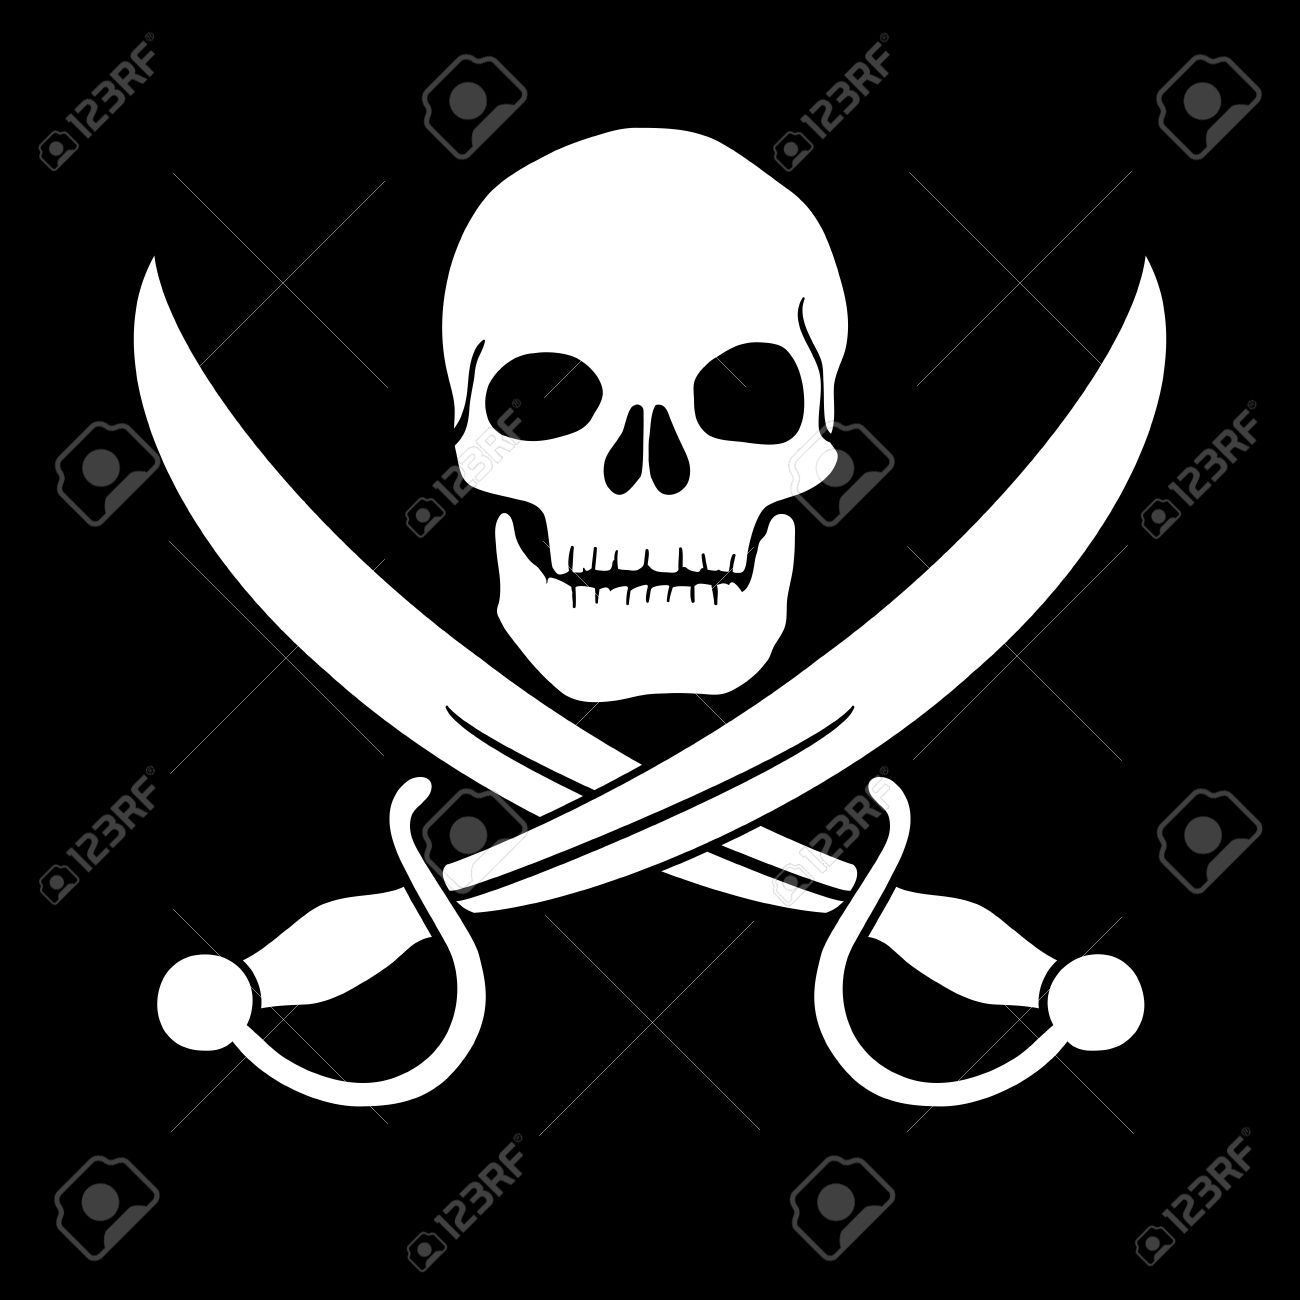 Pirate skull and blades, Jolly Roger Stock Vector - 19569697